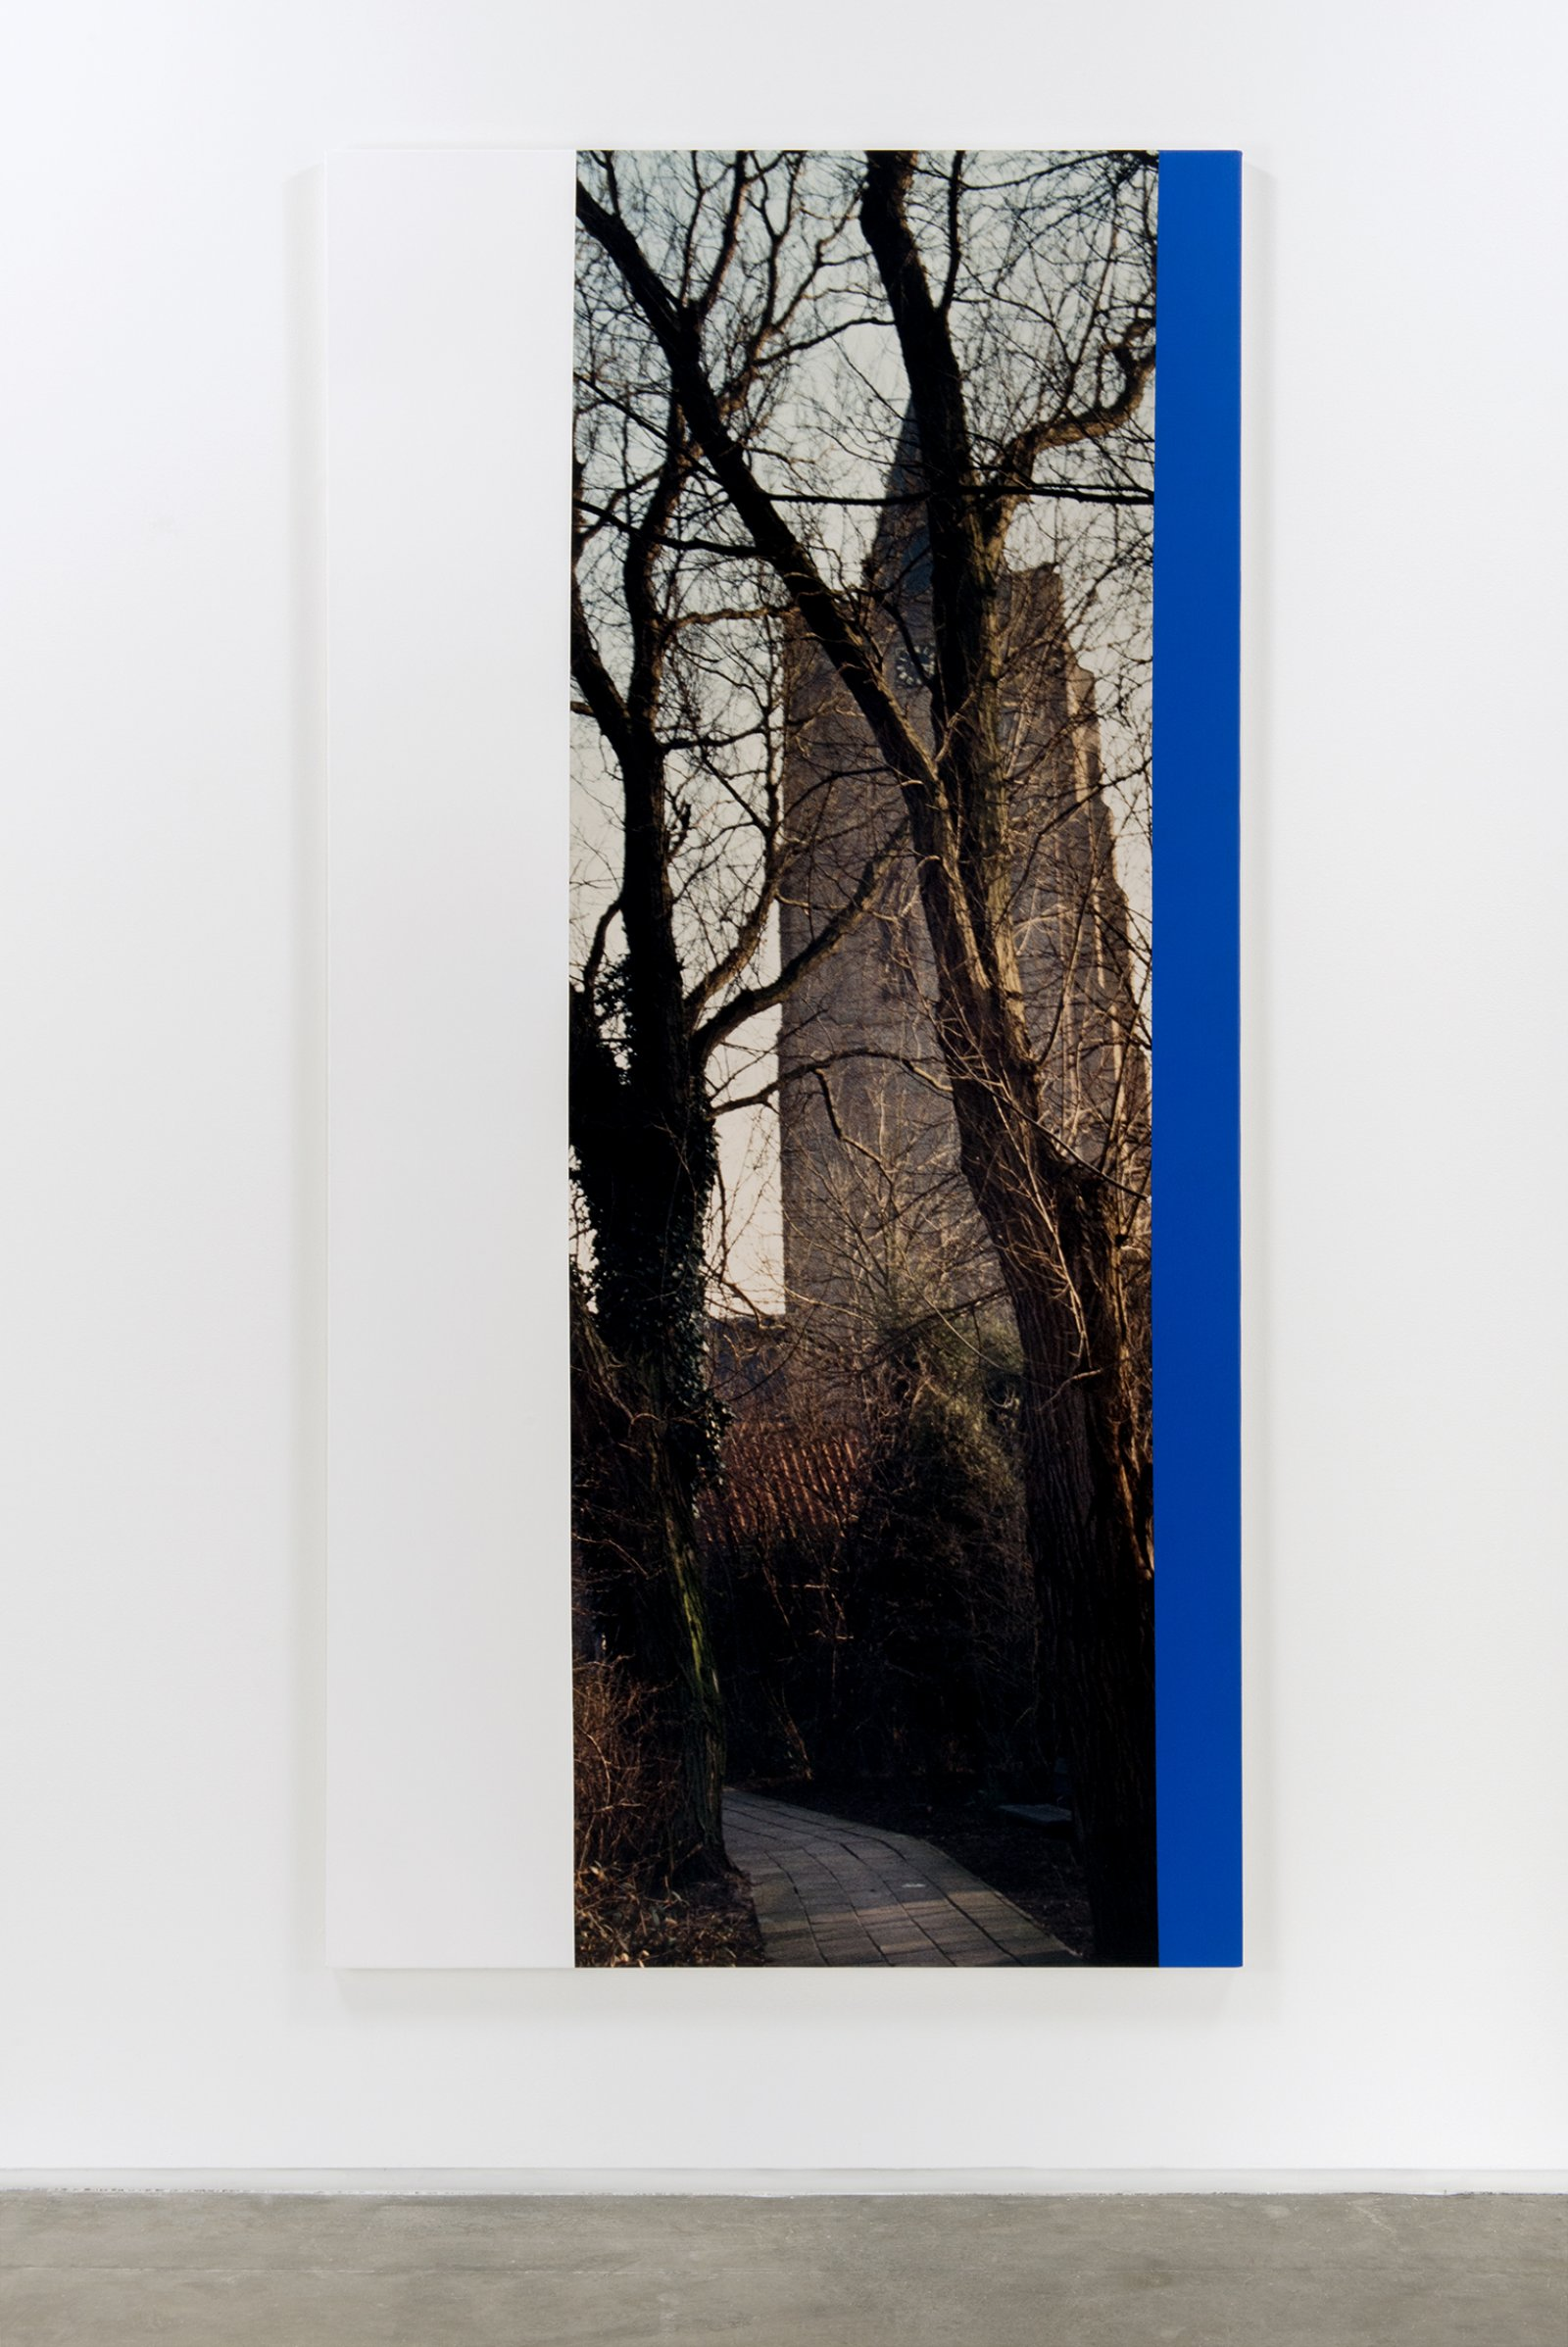 Ian Wallace,Hommage a Mondrian IV(Tower and Trees Middleburg), 1990, photolaminate and acrylic on canvas, 96 x 48 in. (244 x 122 cm)